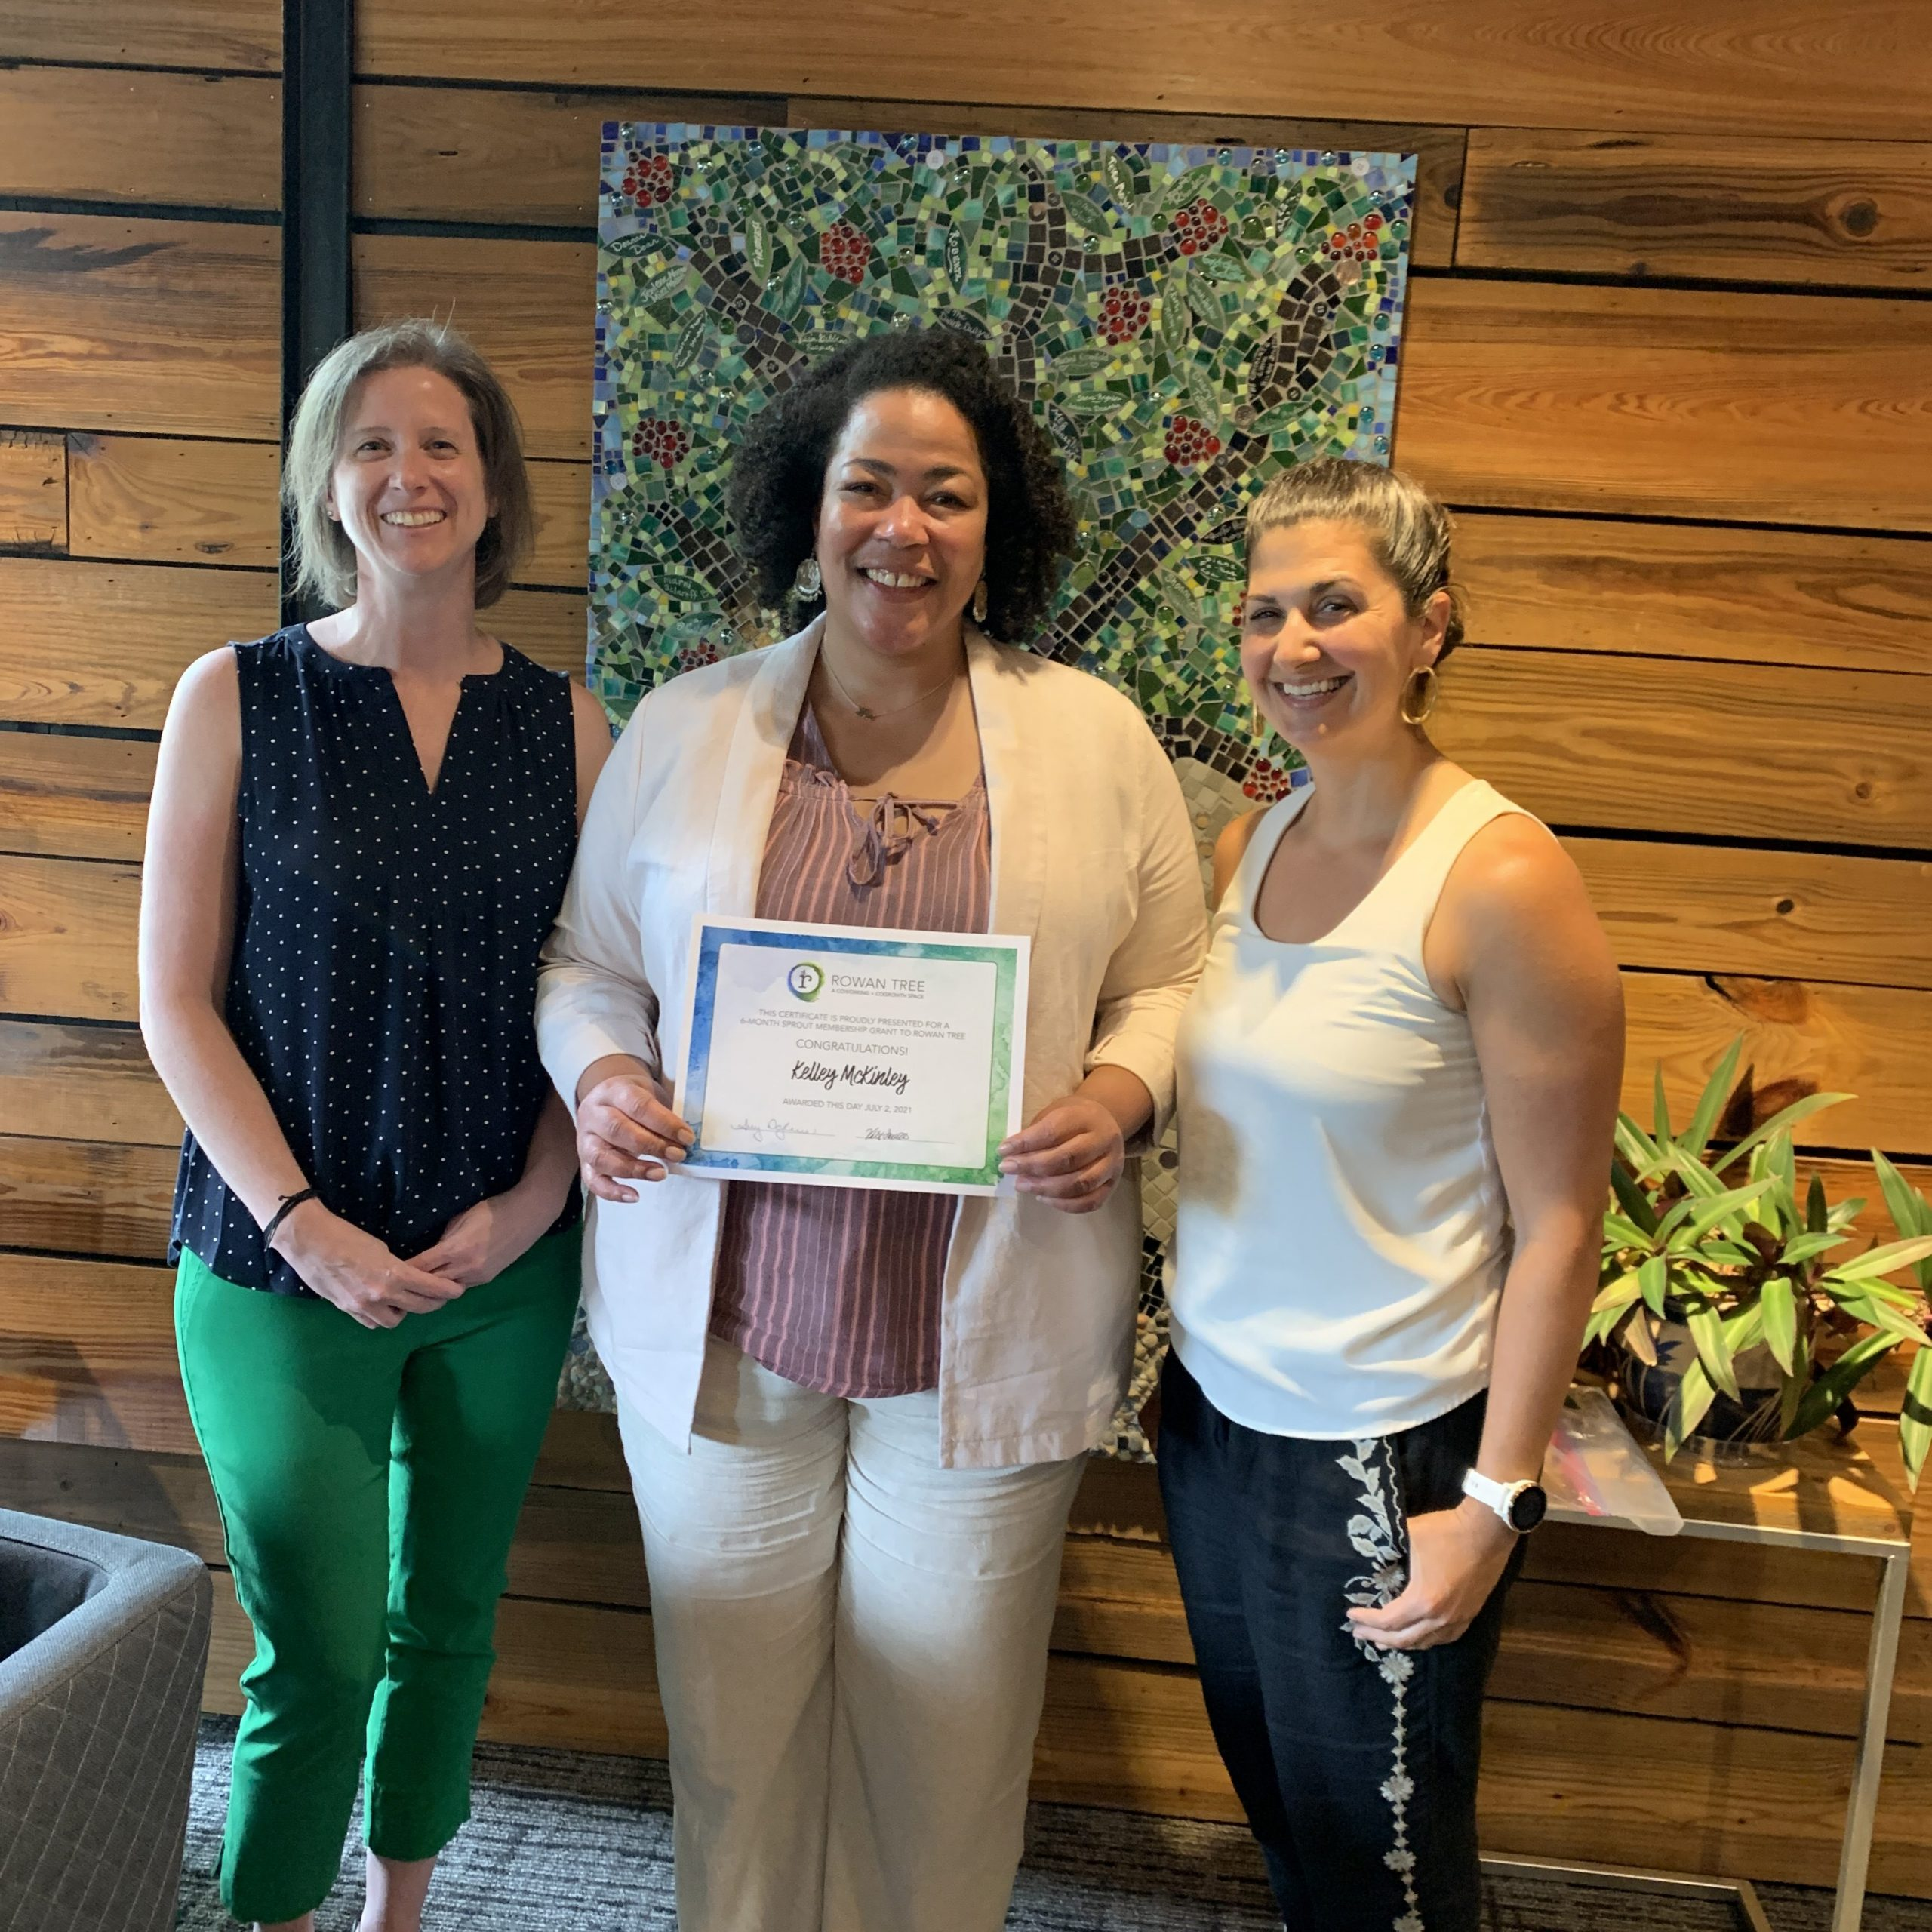 Sprout Membership Grant Winner Kelly McKinley (center) with Co-Founders Amy and Kate